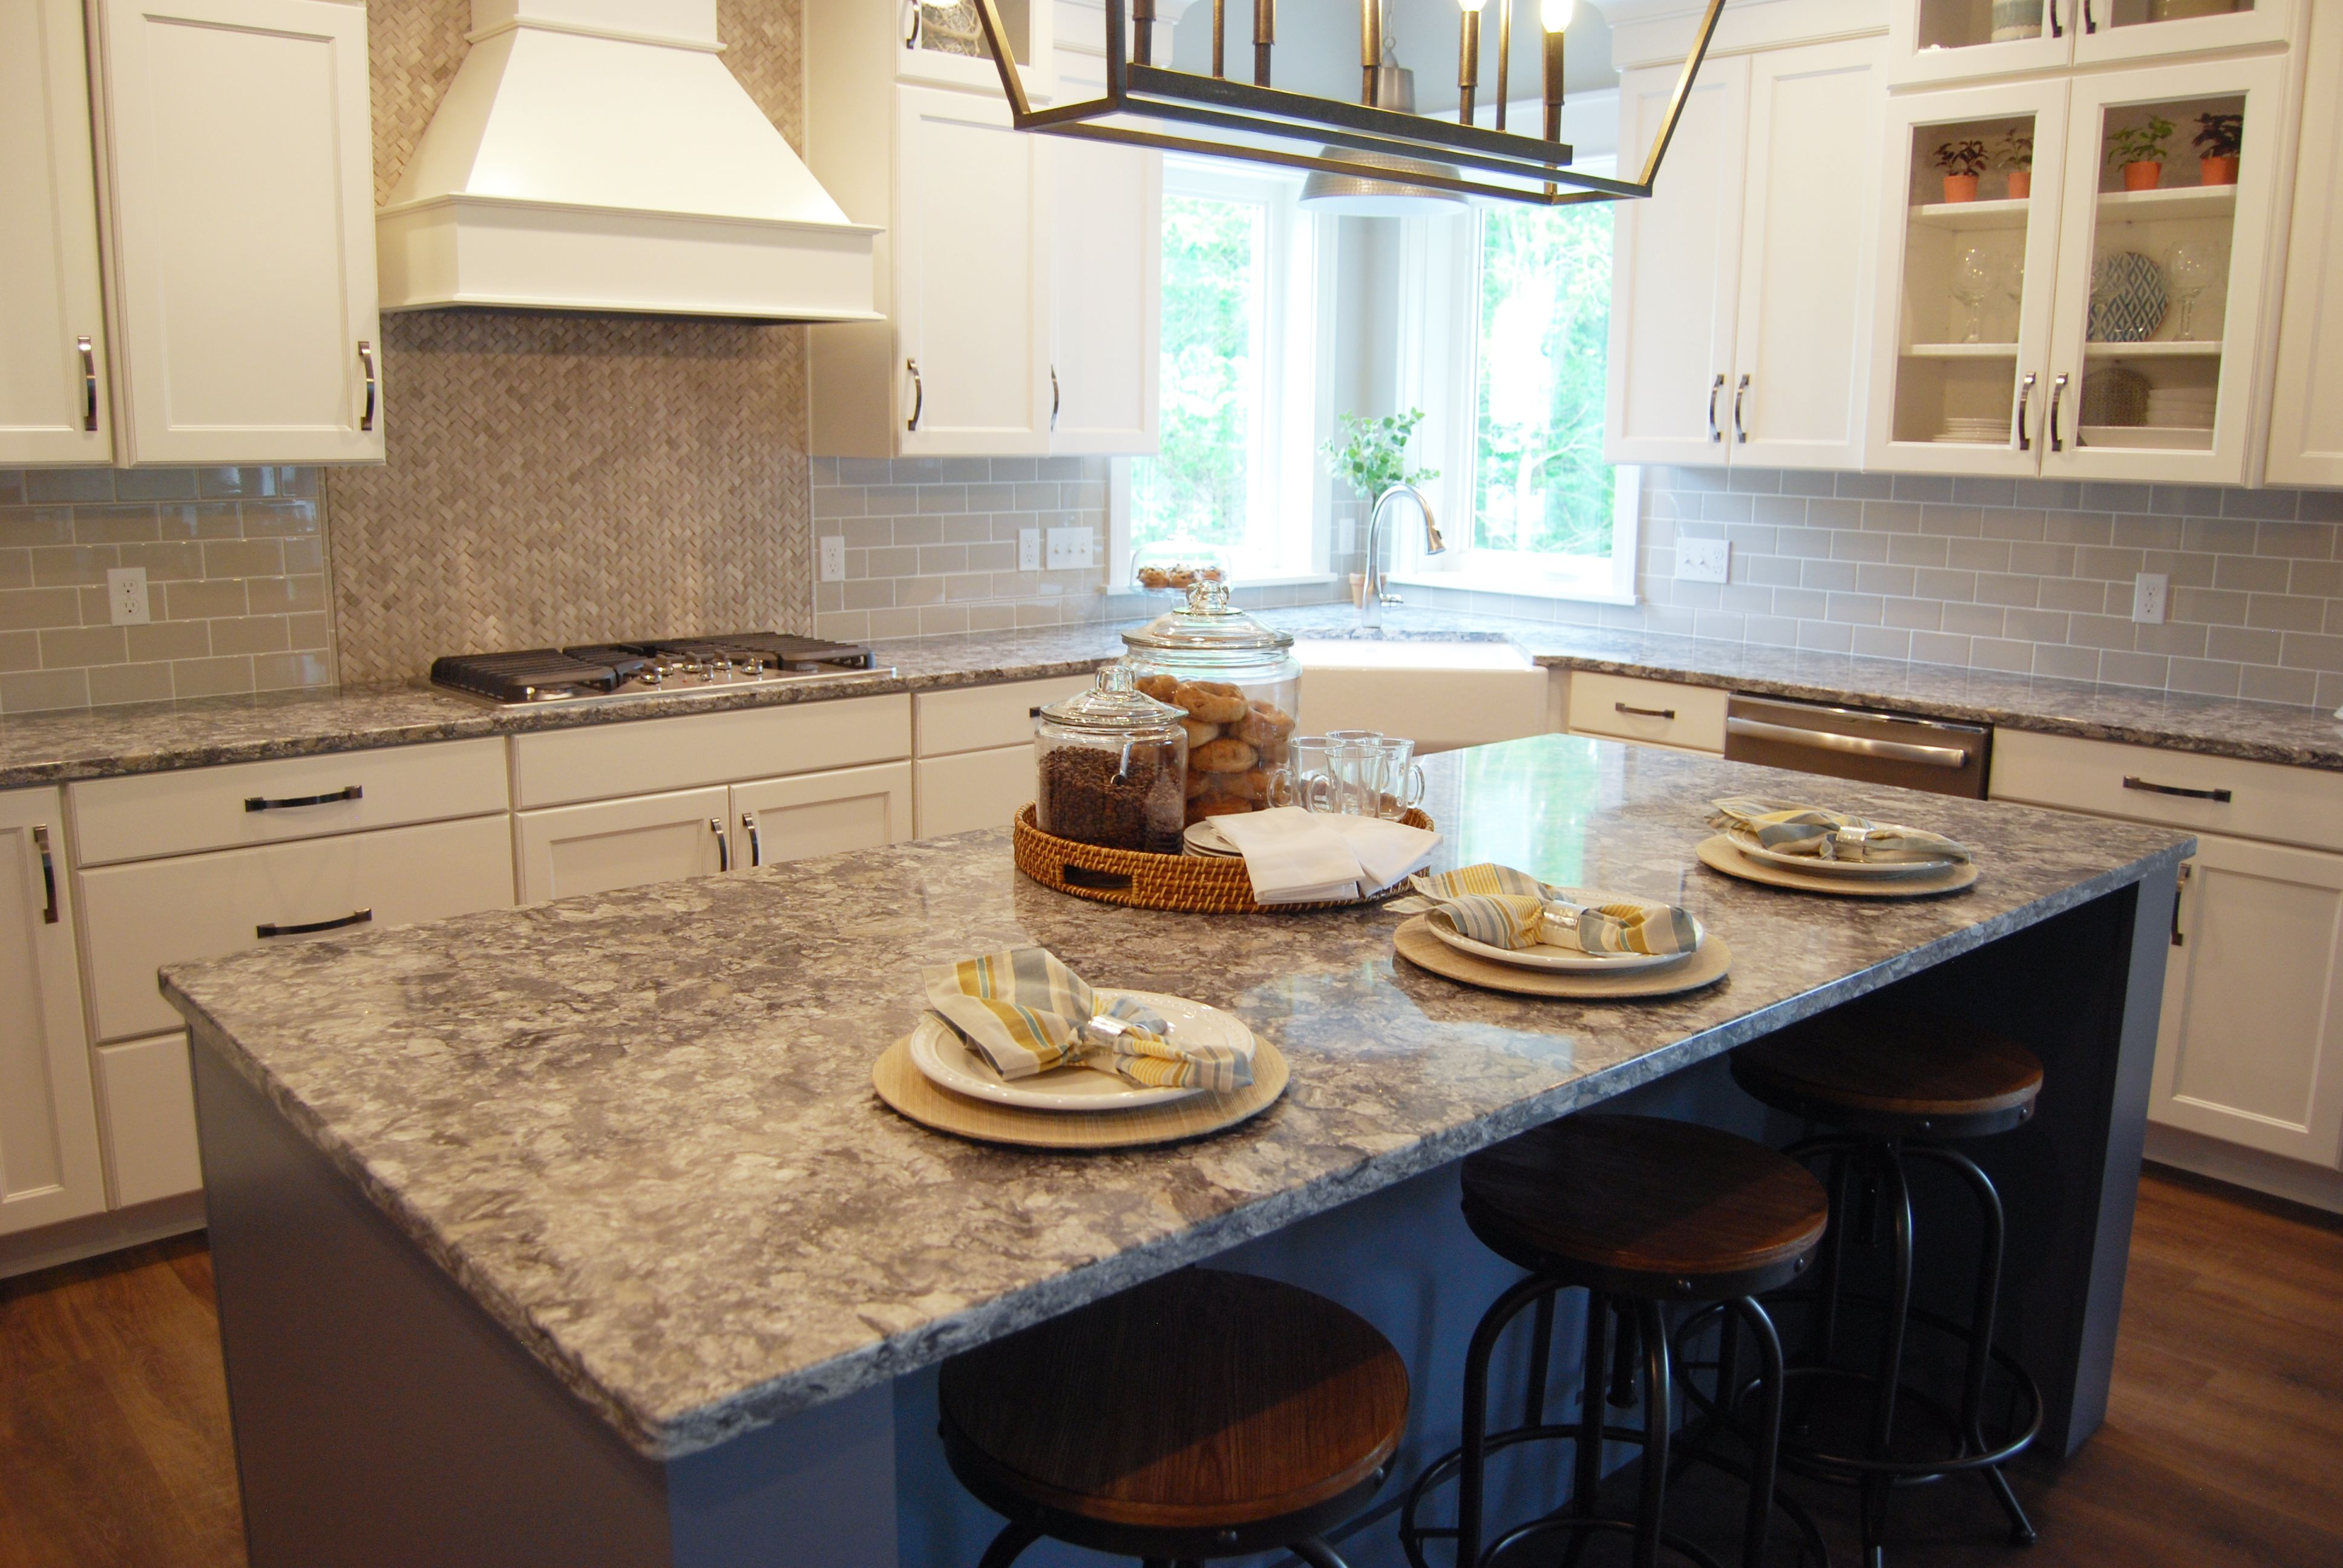 Premier Specializes In High Quality Granite And Stone Measures Fabricates Installs Kitchen Bathroom Countertops The West Michigan Area